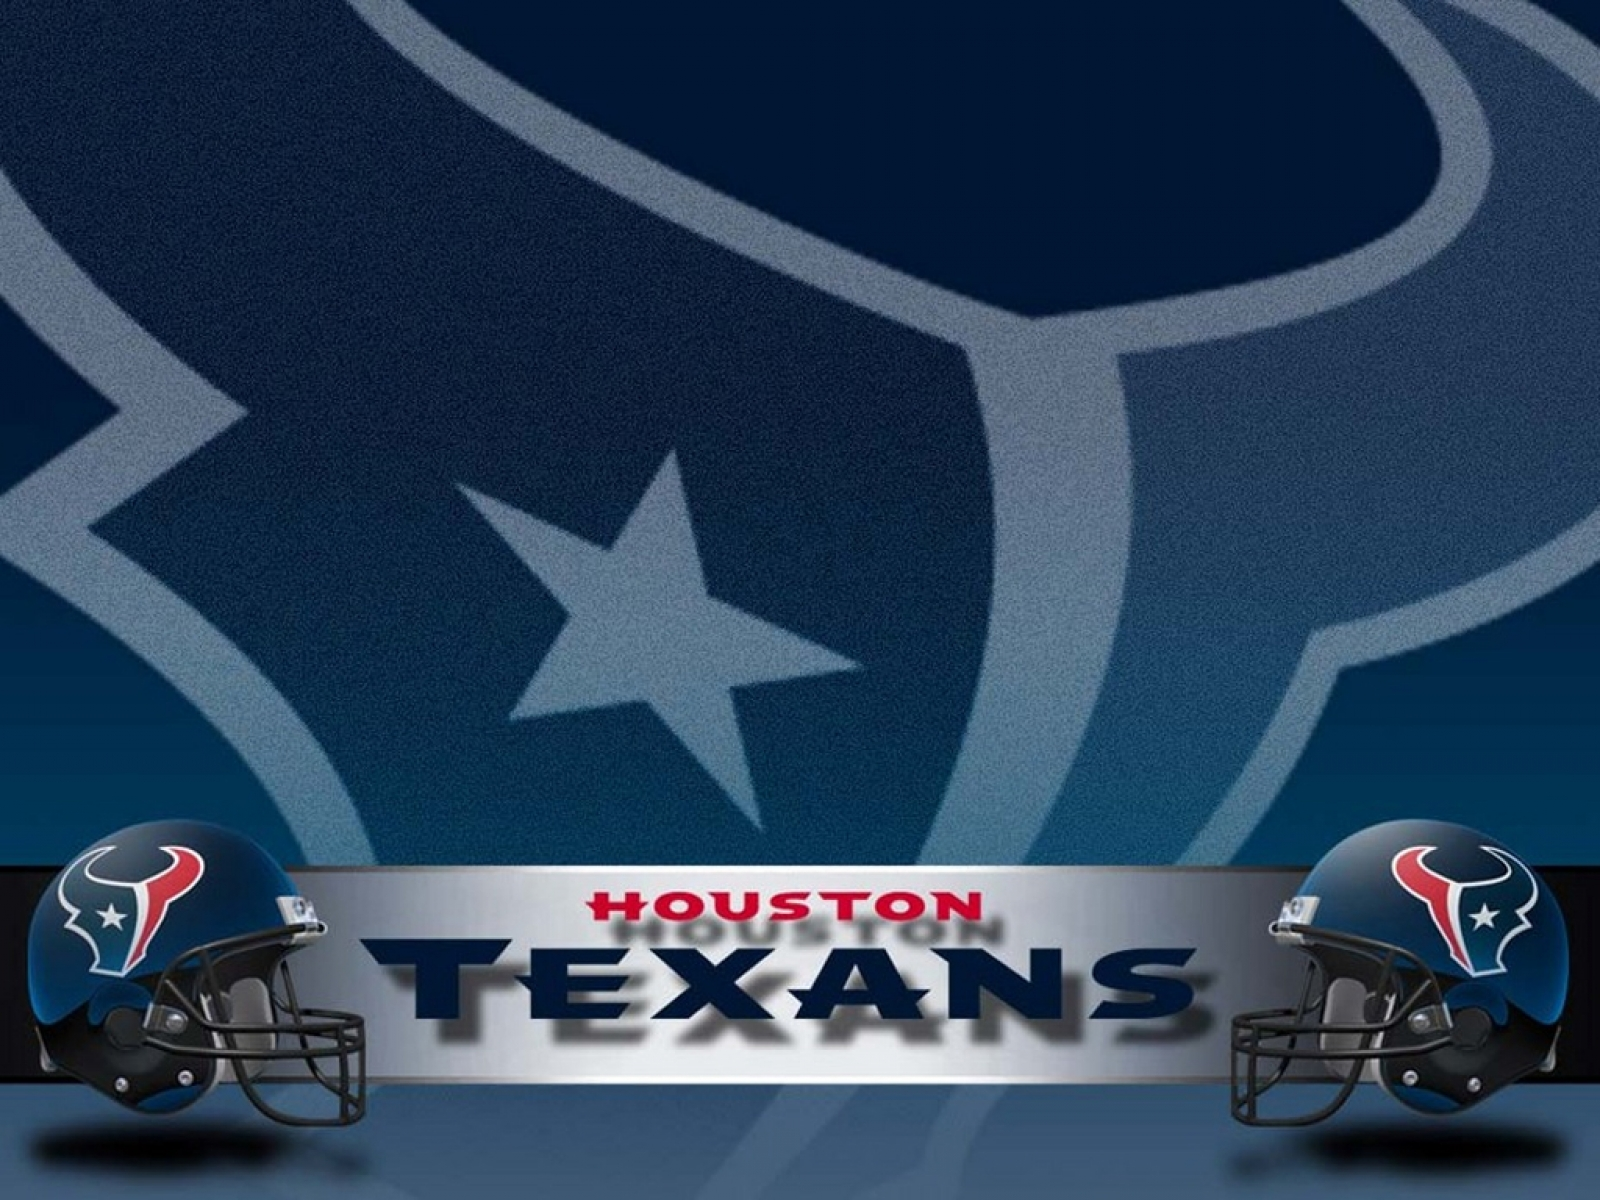 houston texans wallpaper for dektop houston texans wallpaper 2014 1600x1200